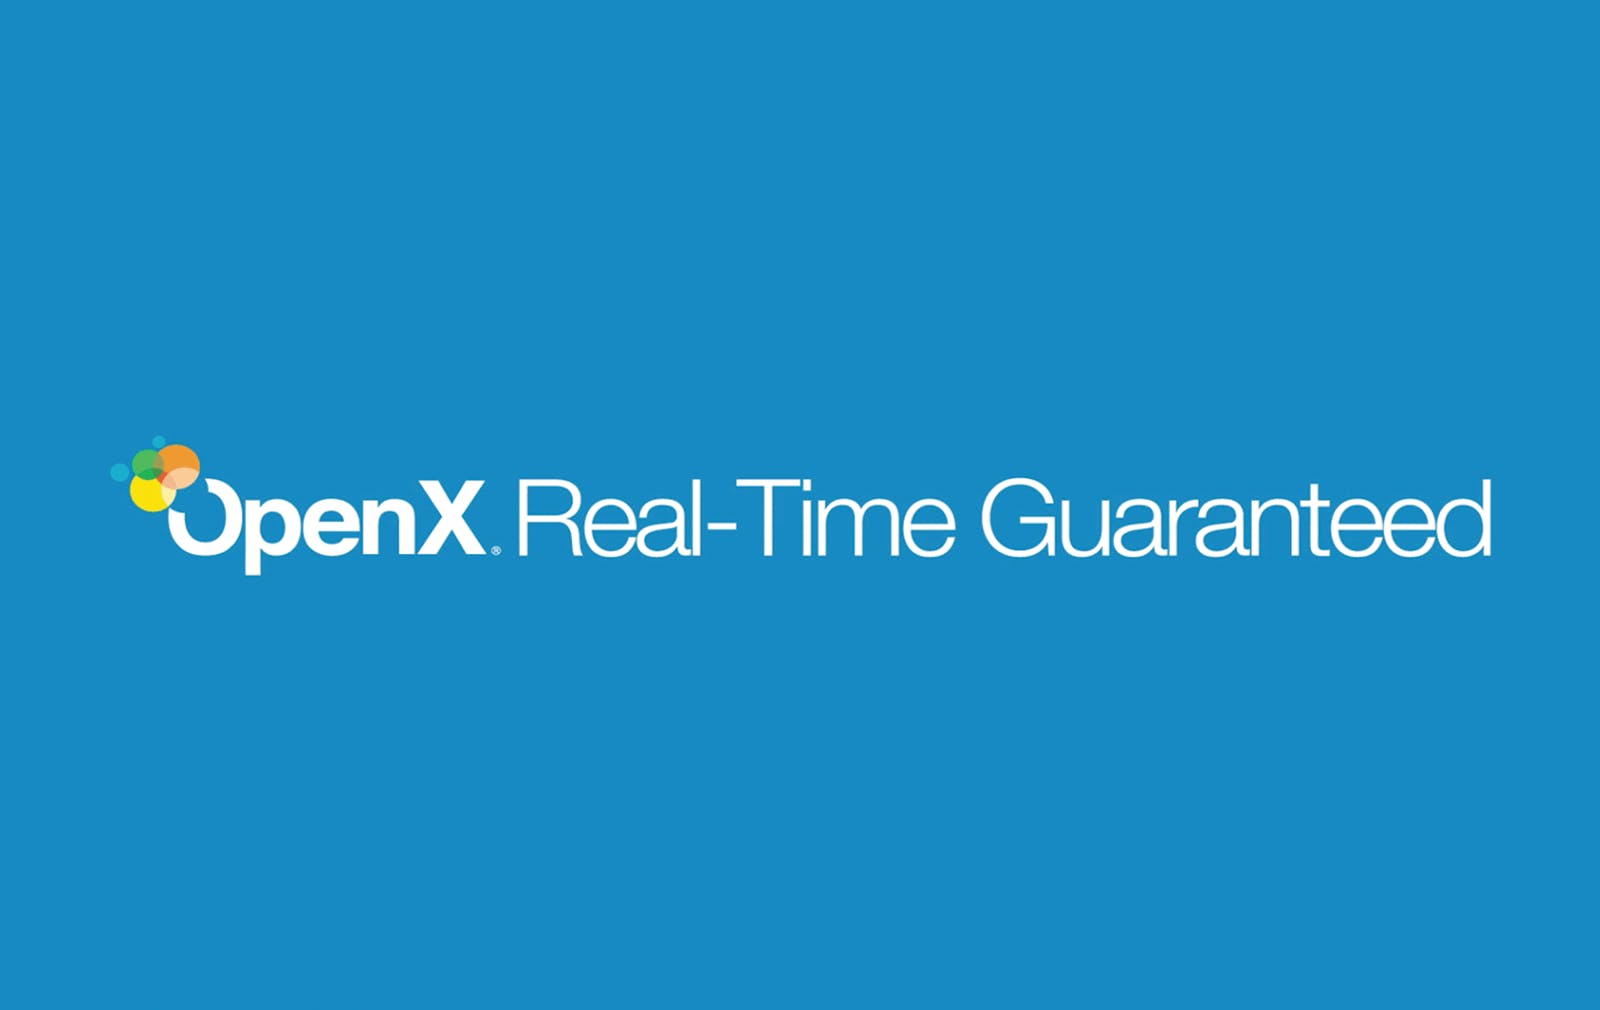 OpenX Real-Time Guaranteed Explained